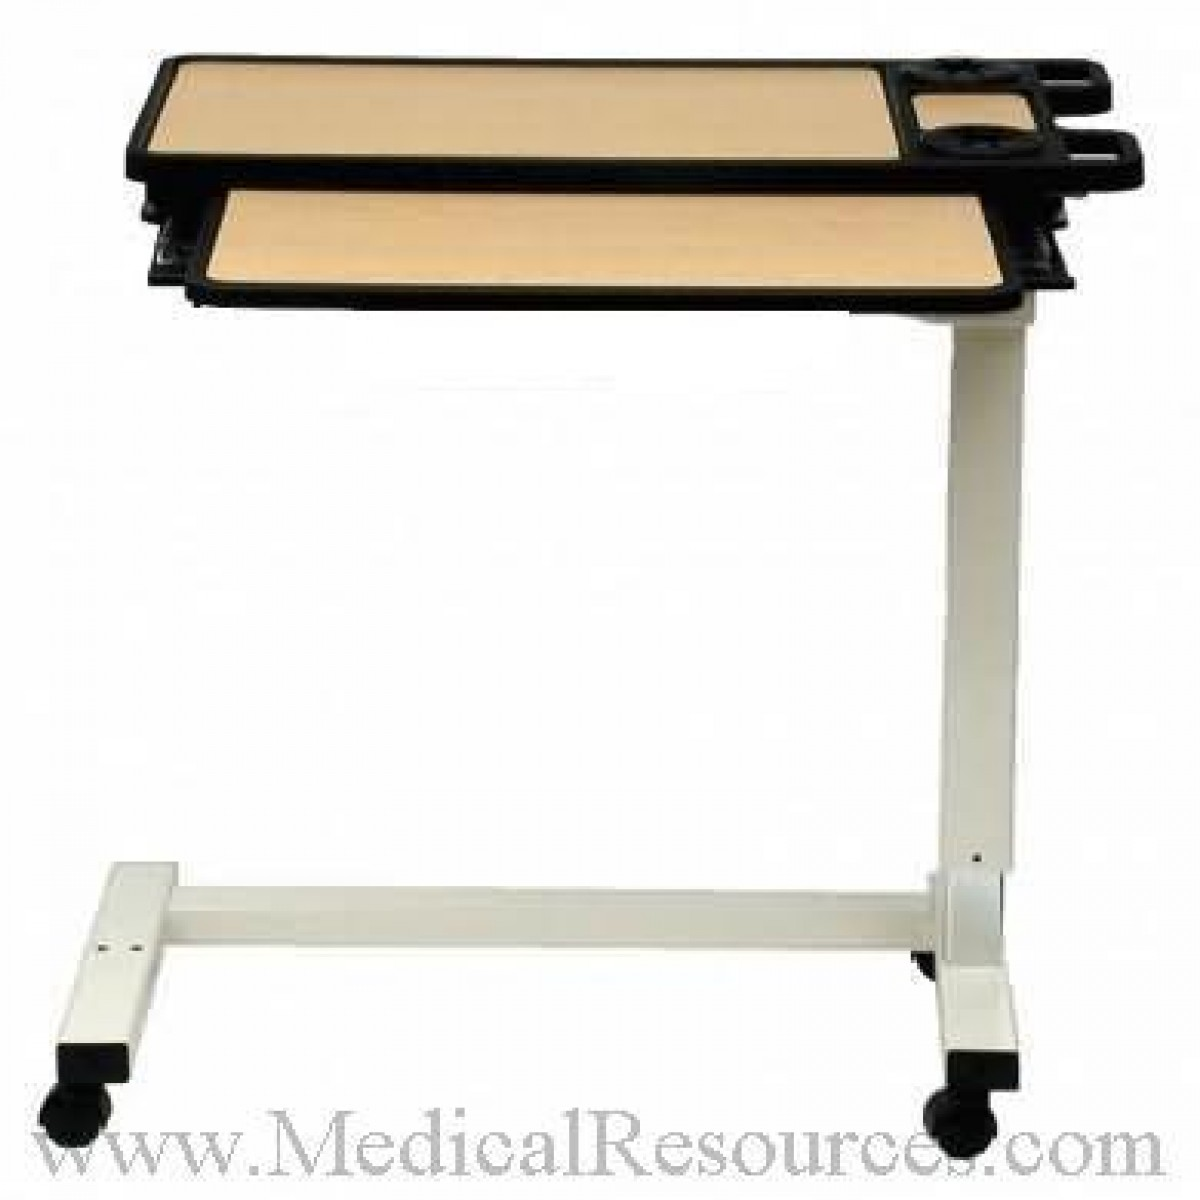 Split top overbed table - Amfab 4950 Executive Ii Split Top Overbed Table